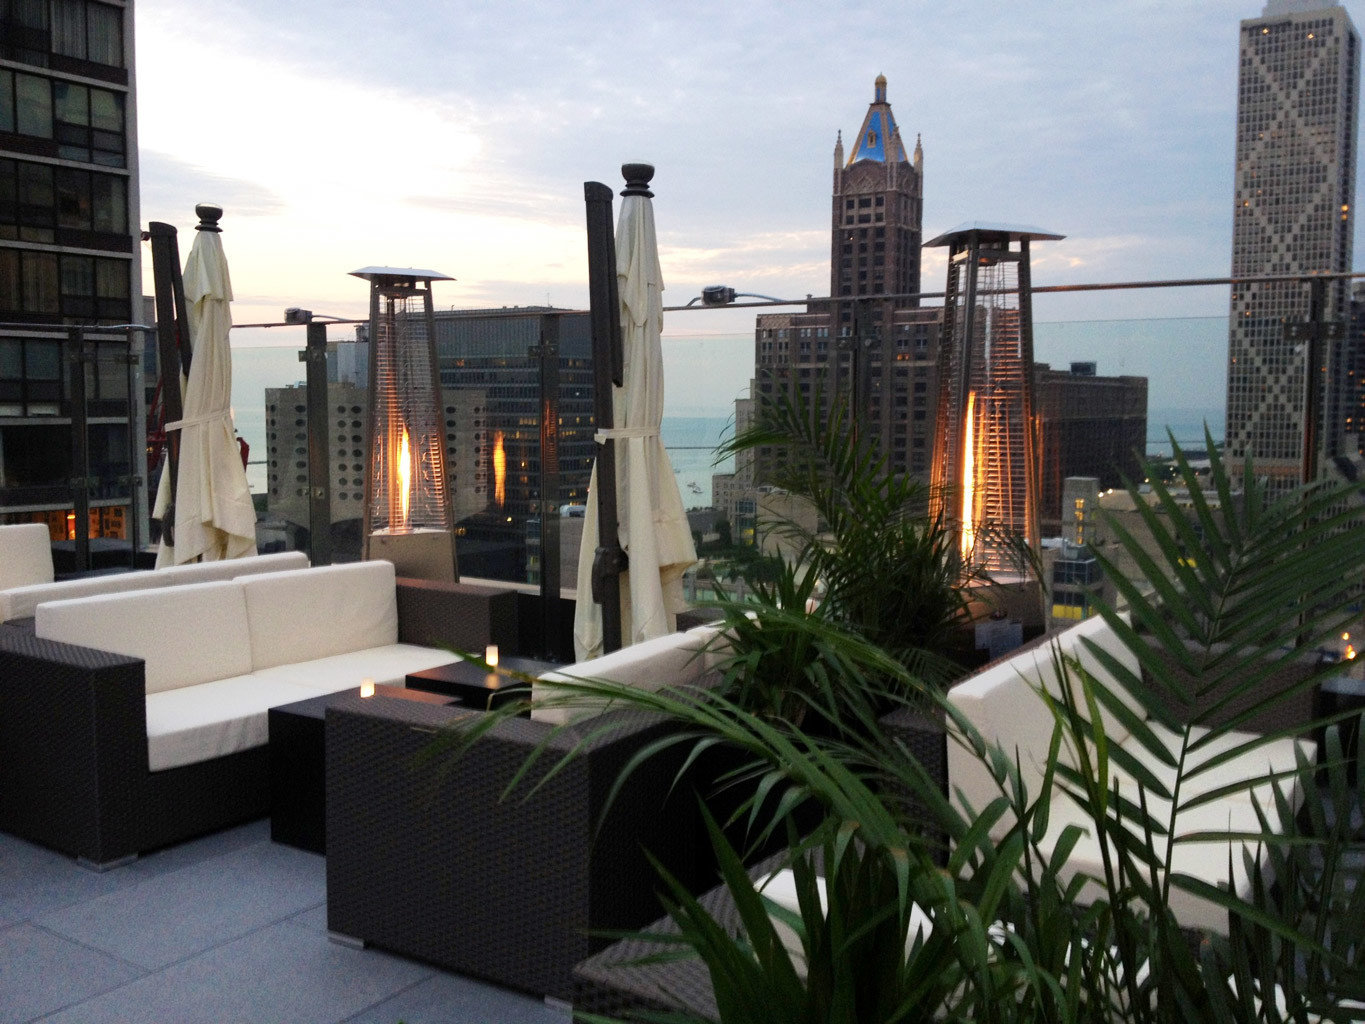 Balcony Boutique Hotels Chicago City Hotels Living Lounge Luxury Modern property condominium Architecture home real estate facade outdoor structure estate apartment